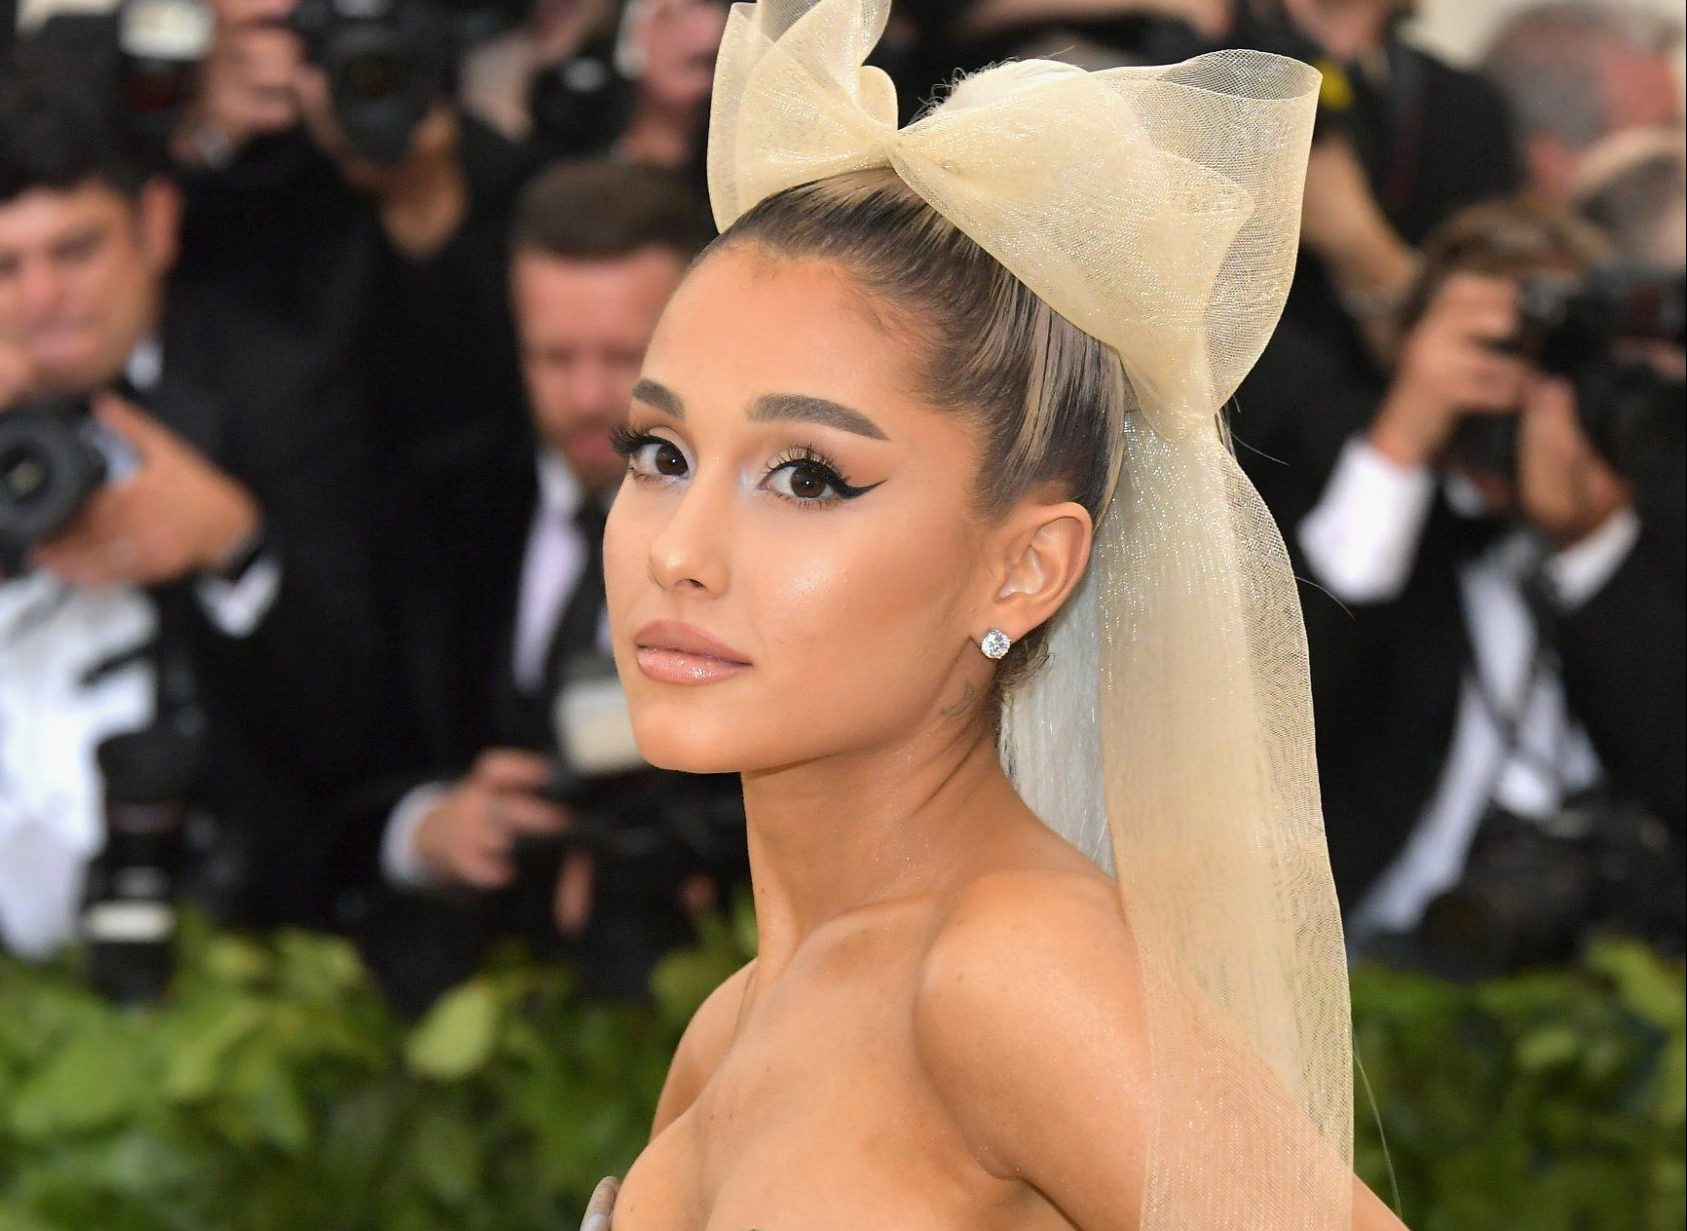 NEW YORK, NY - MAY 07: Ariana Grande attends the Heavenly Bodies: Fashion & The Catholic Imagination Costume Institute Gala at The Metropolitan Museum of Art on May 7, 2018 in New York City. (Photo by Neilson Barnard/Getty Images)